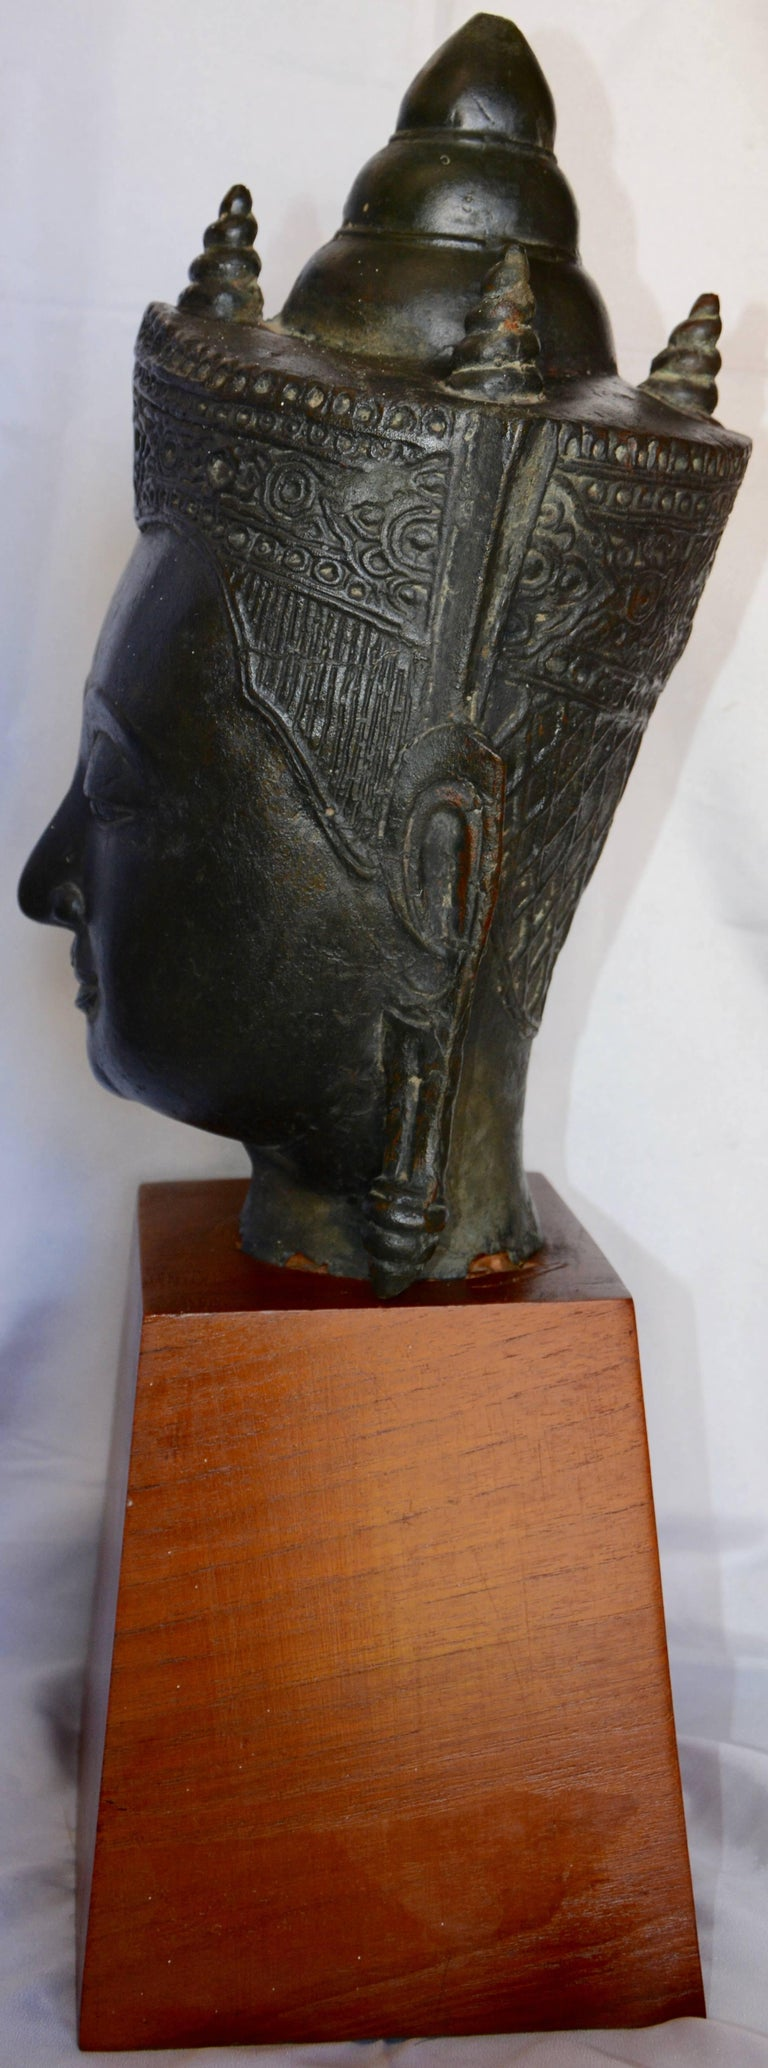 Cast Bronze Bust of Buddha on Wooden Base, Late 18th Century For Sale 6